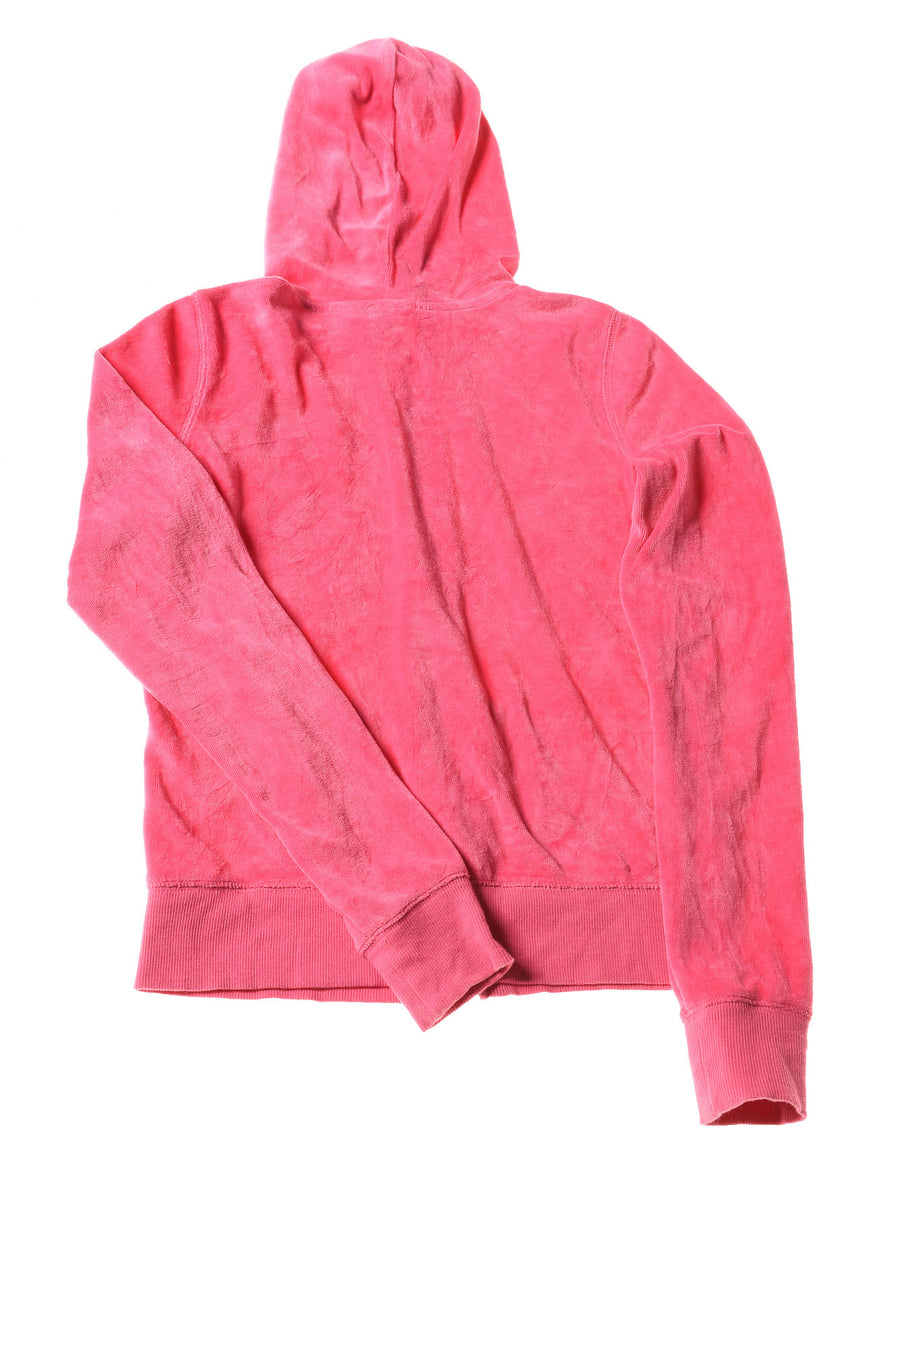 Women's Jacket By Pink